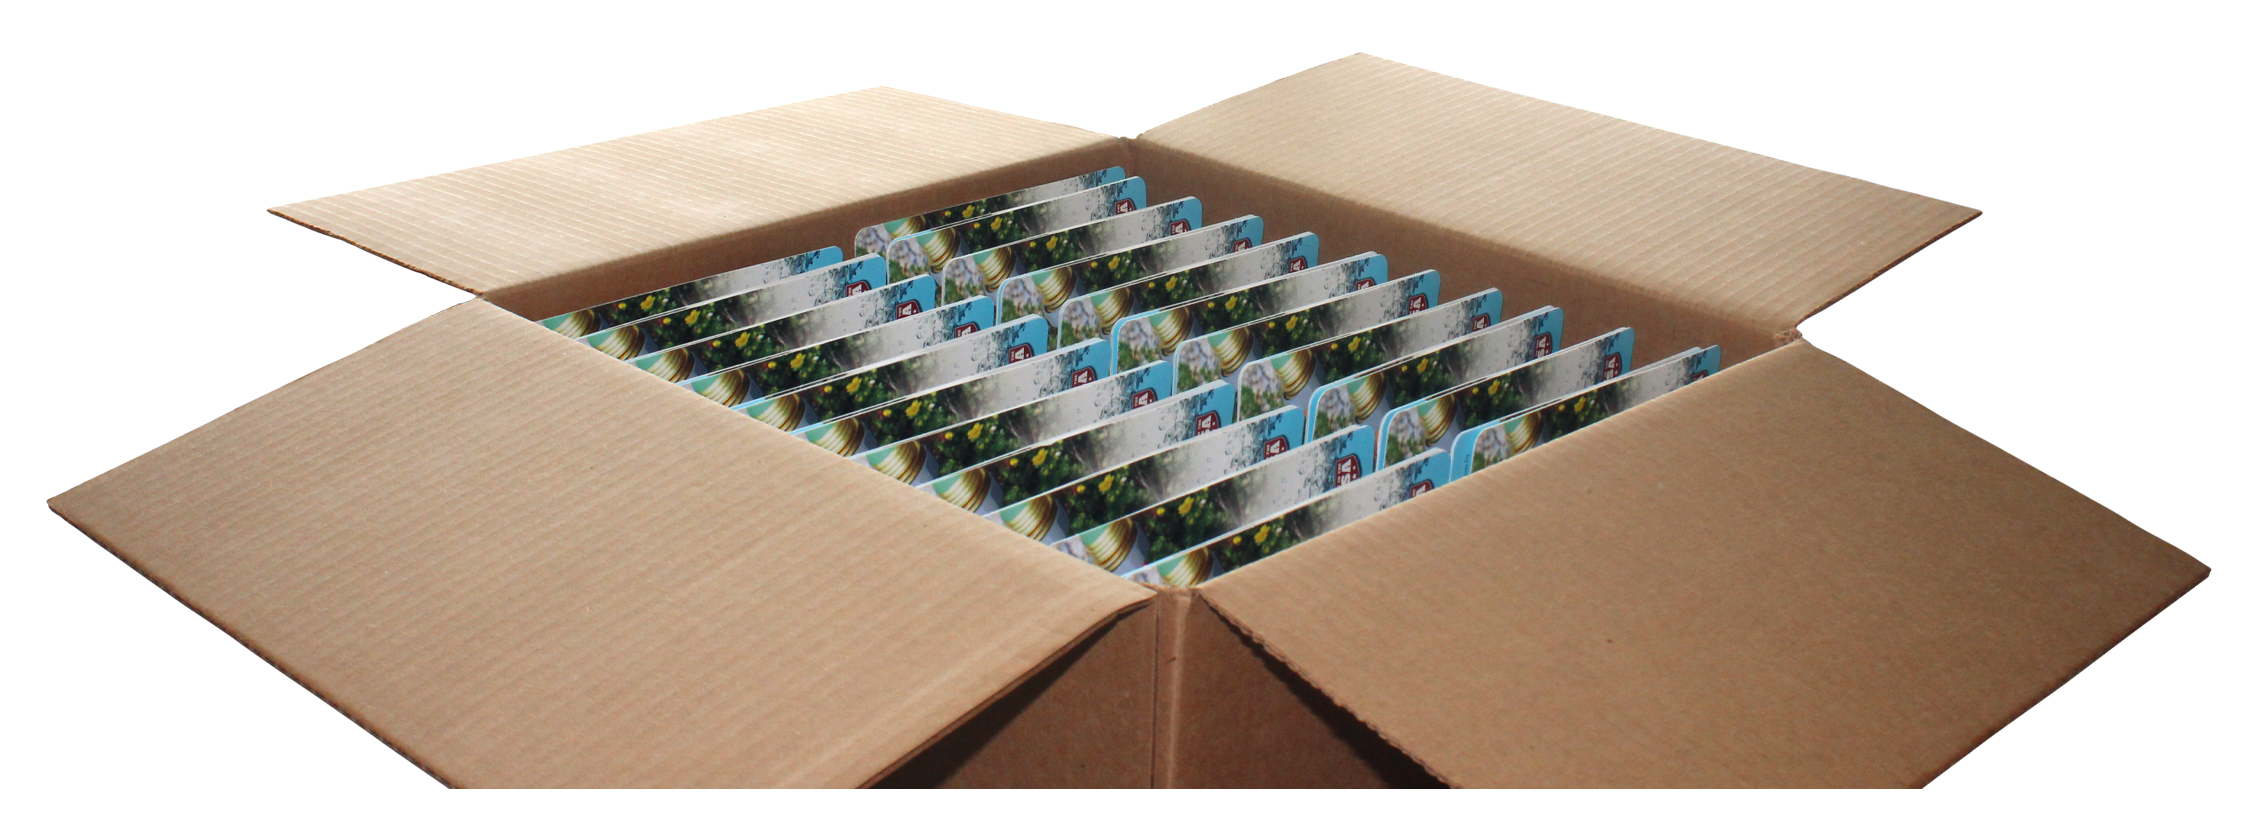 Distribution Packaging